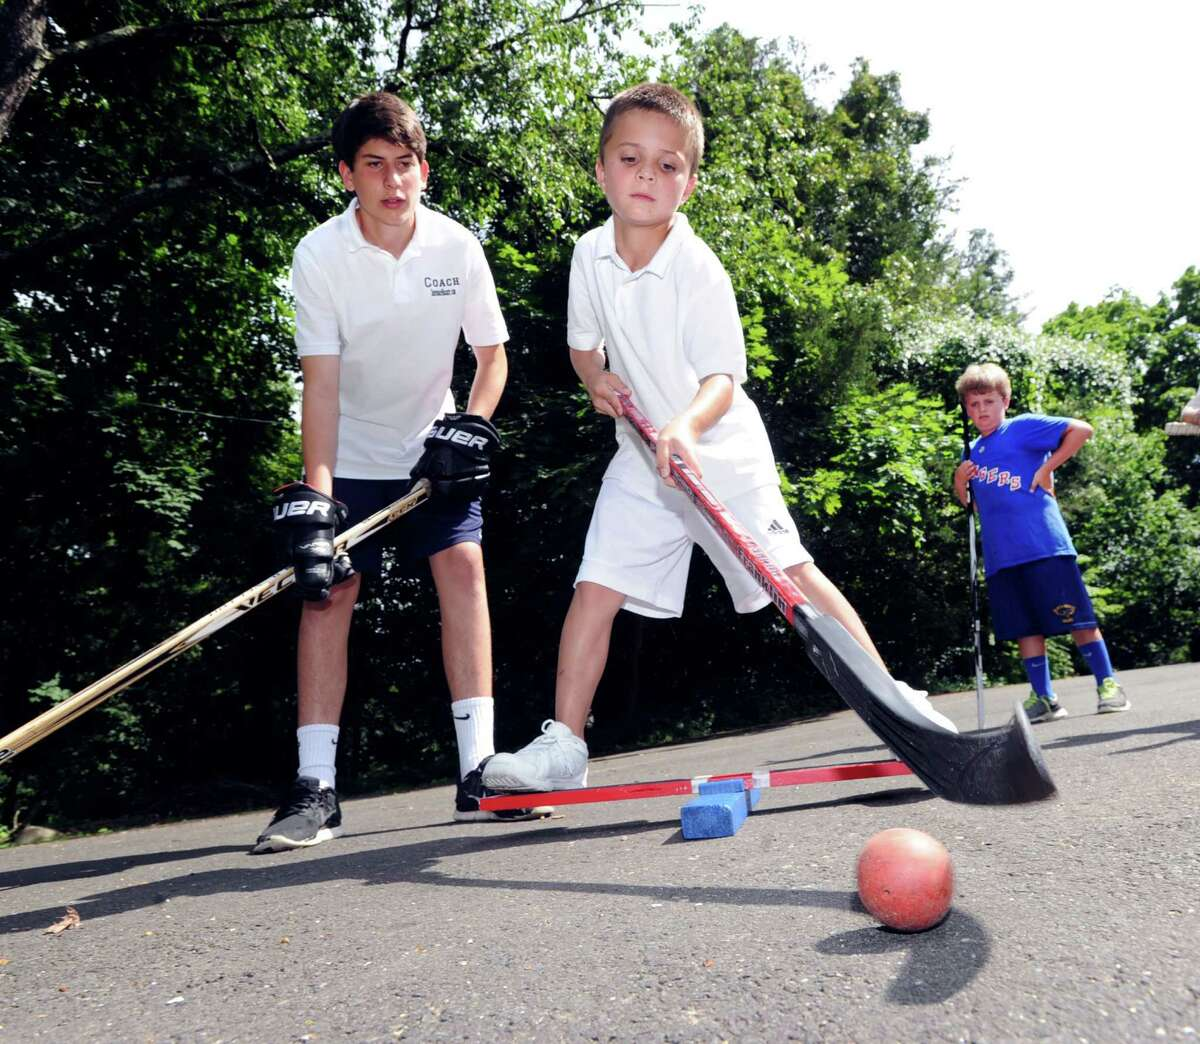 At center, Lucas St. Louis, 9, balances on a board while attempting stick handling skills with a ball as Mike Mozian, 16, of Greenwich, left, looks on during a hockey skills clinic taught by Mike and his brother Alex, 14, at the home of Jenny Allen of Old Greenwich, Conn., Wednesday afternoon, July 16, 2014. The brothers started their mobile hockey clinic with the help of their father, Joe Mozian, where they travel to people's homes and give them hockey lessons and training in the driveway. Lucas St. Louis's father is Greenwich resident and New York Ranger, Martin St. Louis. Jenny Allen's son, Kyle Allen, 8, at right, and other friends, also participated in the 90 minute clinic in the driveway of the Allen home.